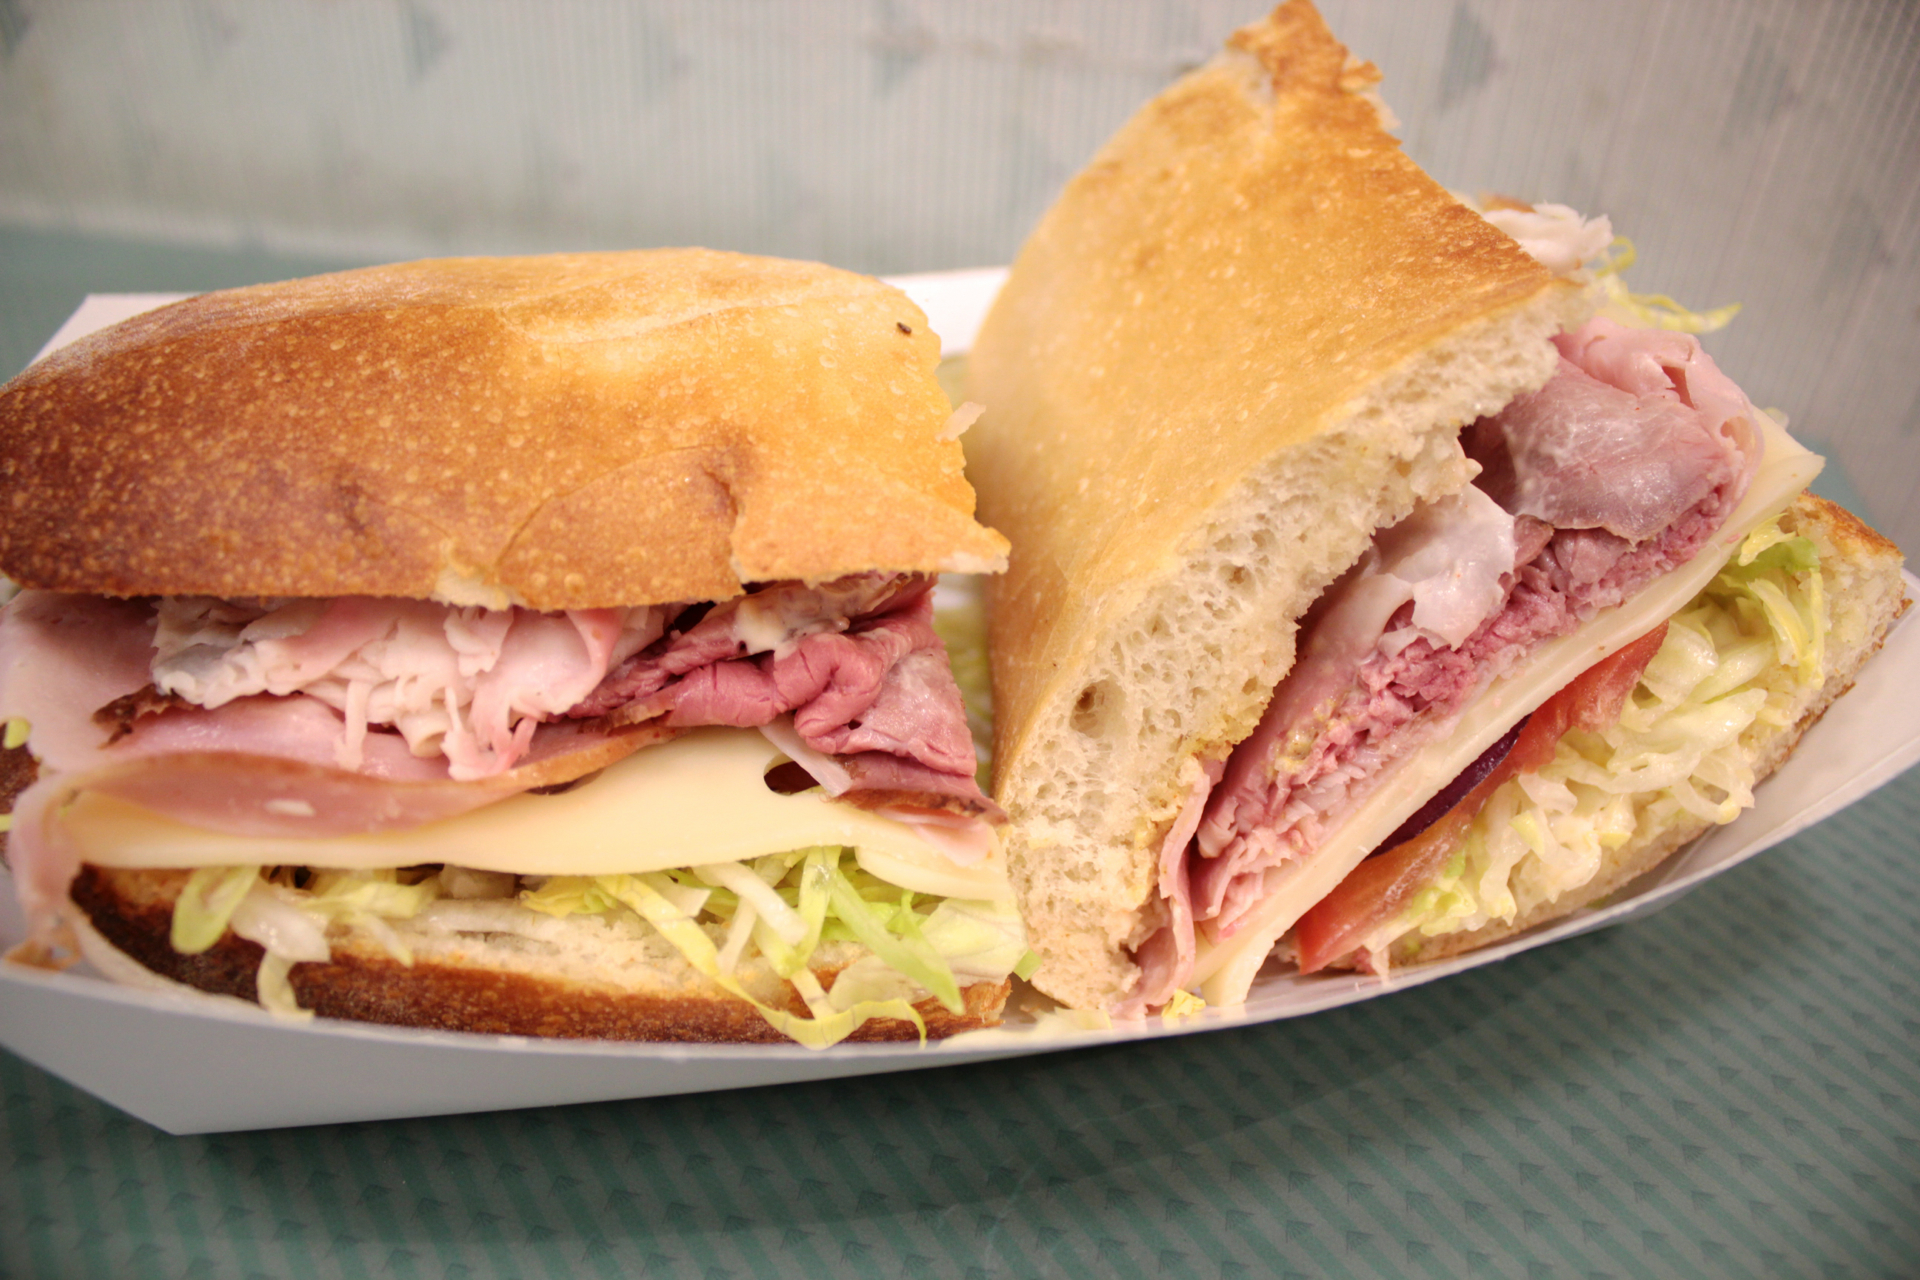 The classic sandwich at Freshly Baked Eatery with roast beef, country ham and turkey.